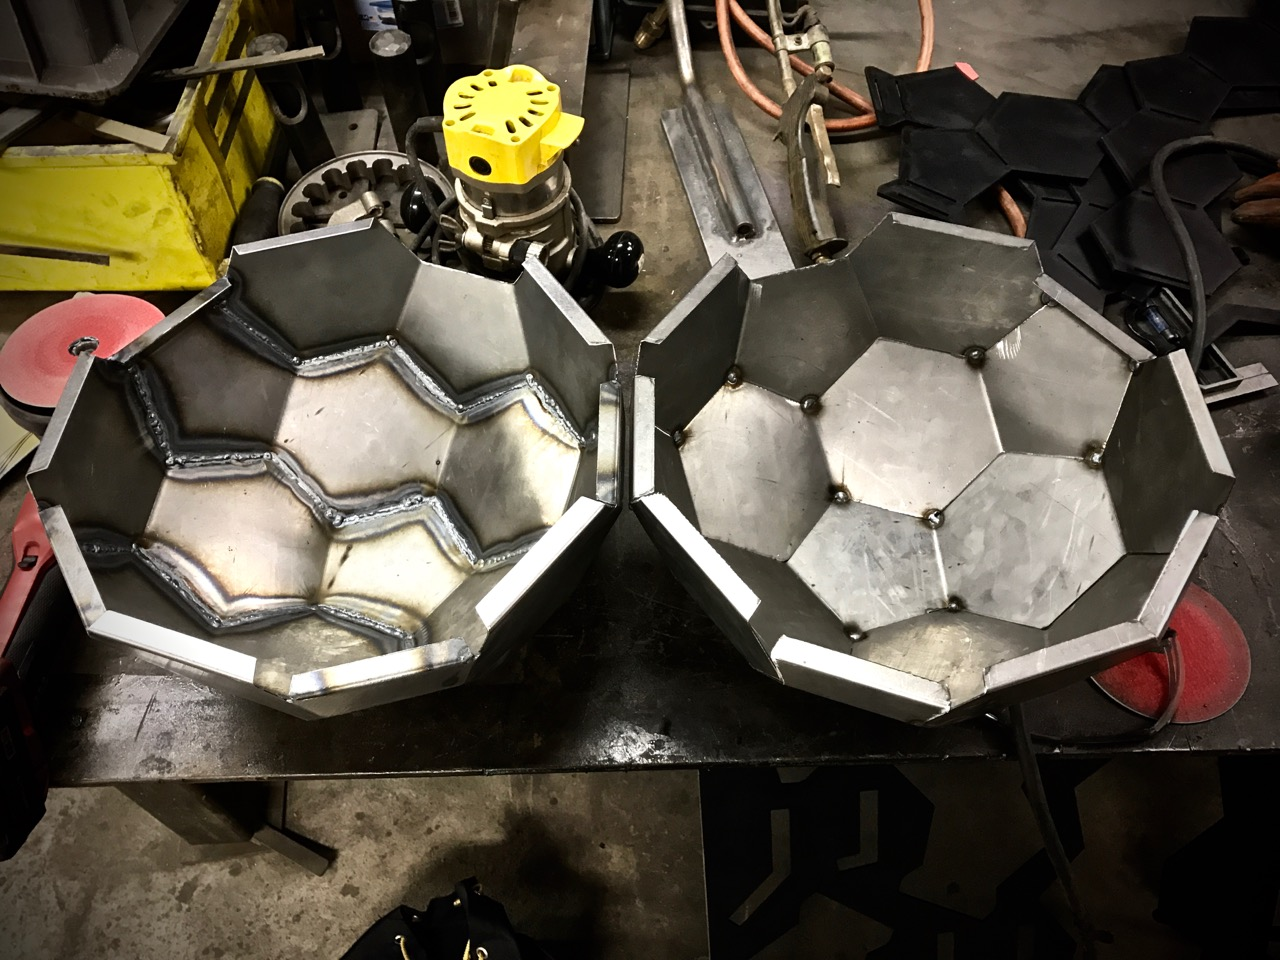 Prototype geodesic dome grill